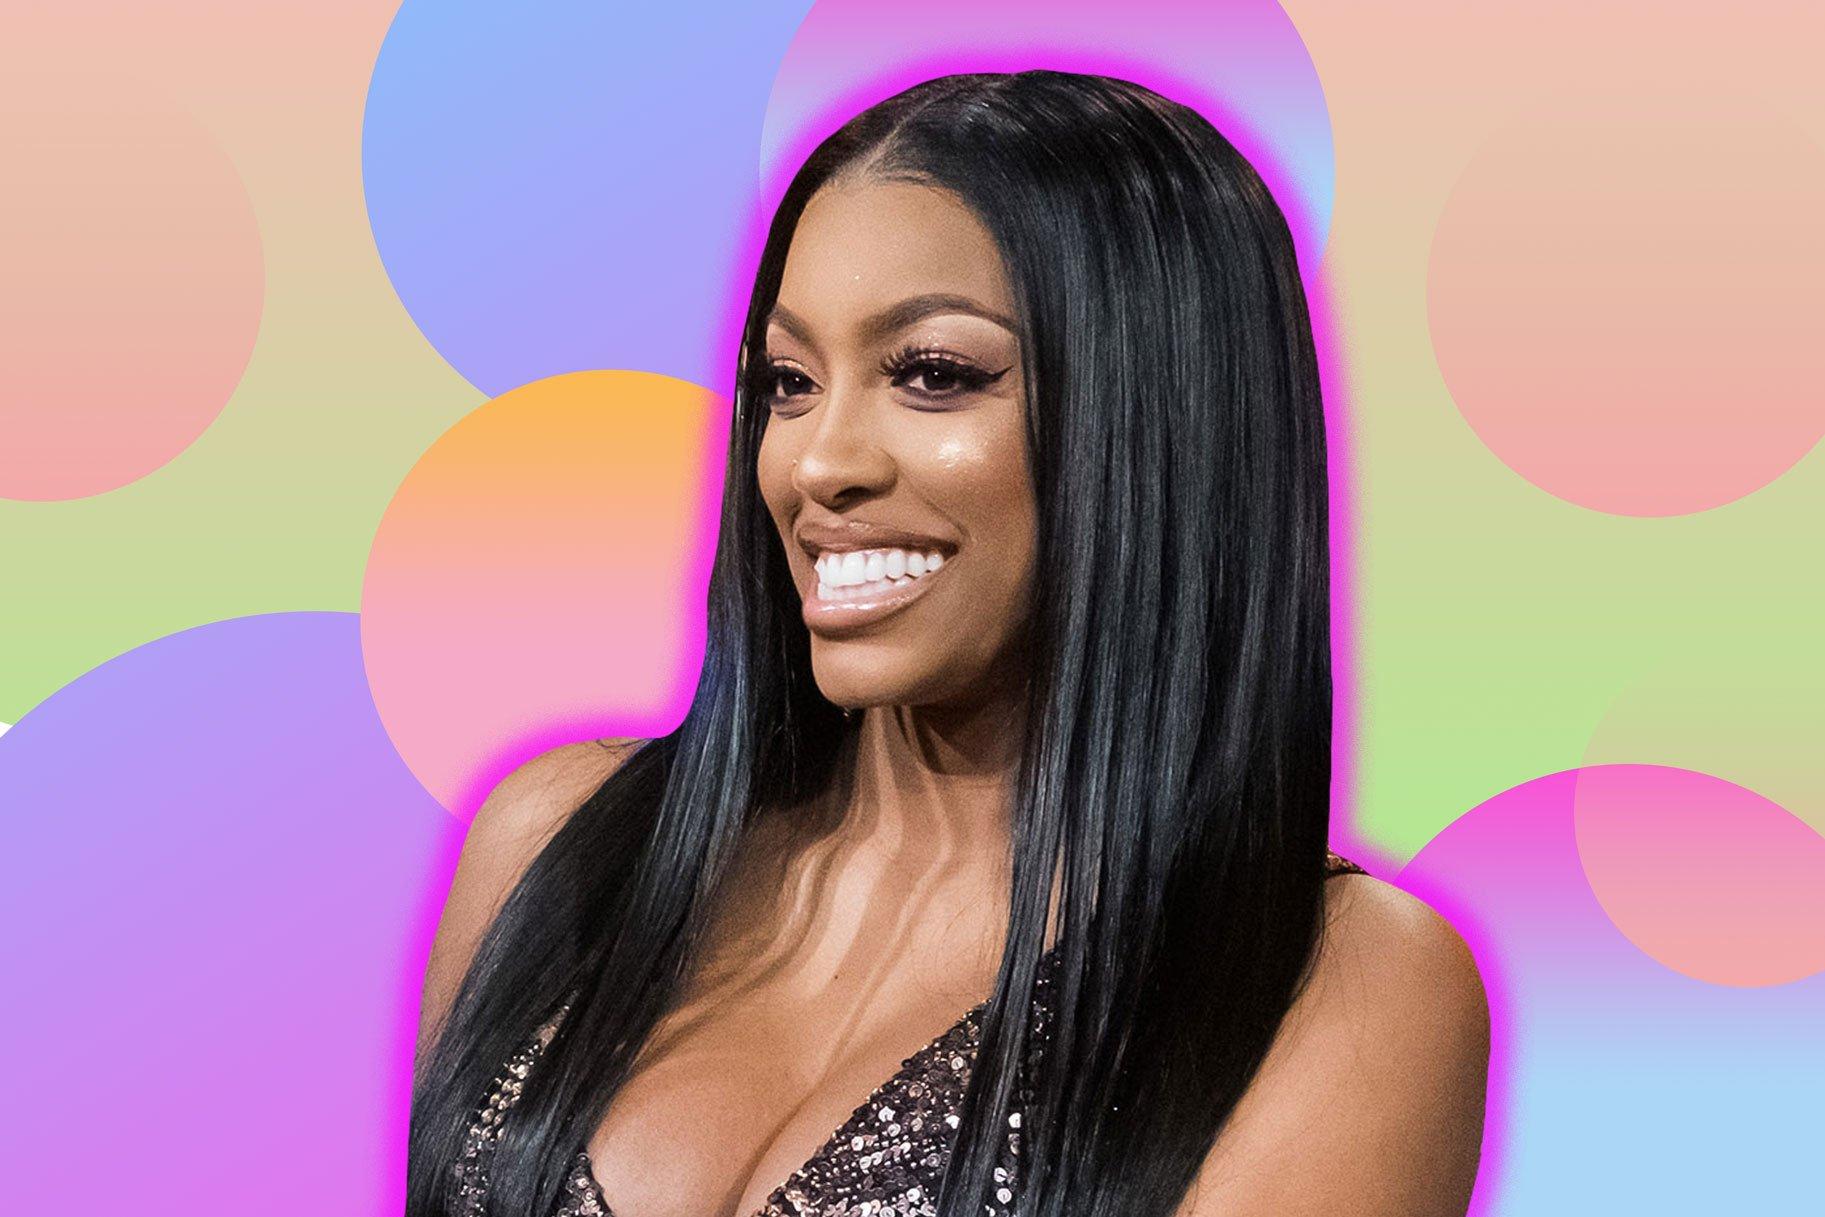 Porsha Williams' Video Featuring Santa Claus Makes Fans' Day